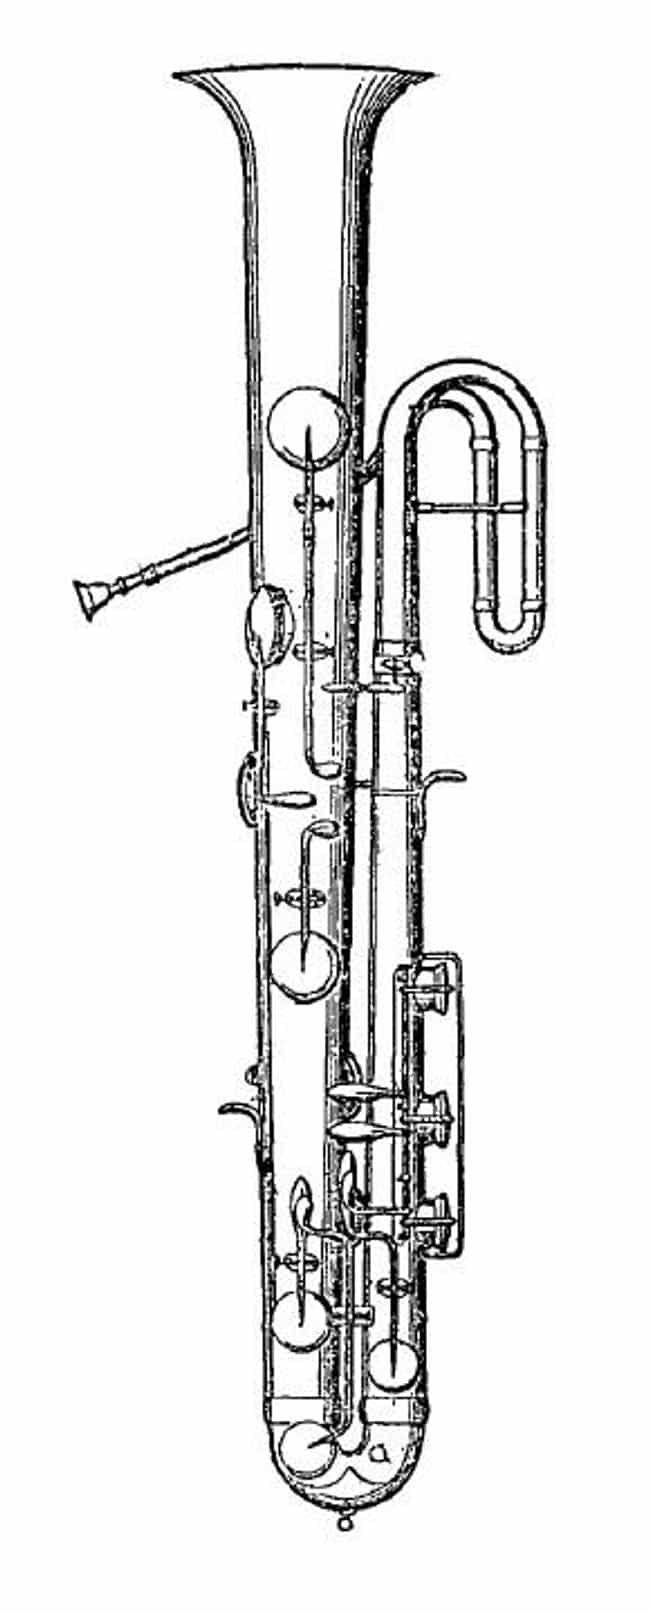 Ophicleide is listed (or ranked) 3 on the list Wind instrument - Instruments in This Family